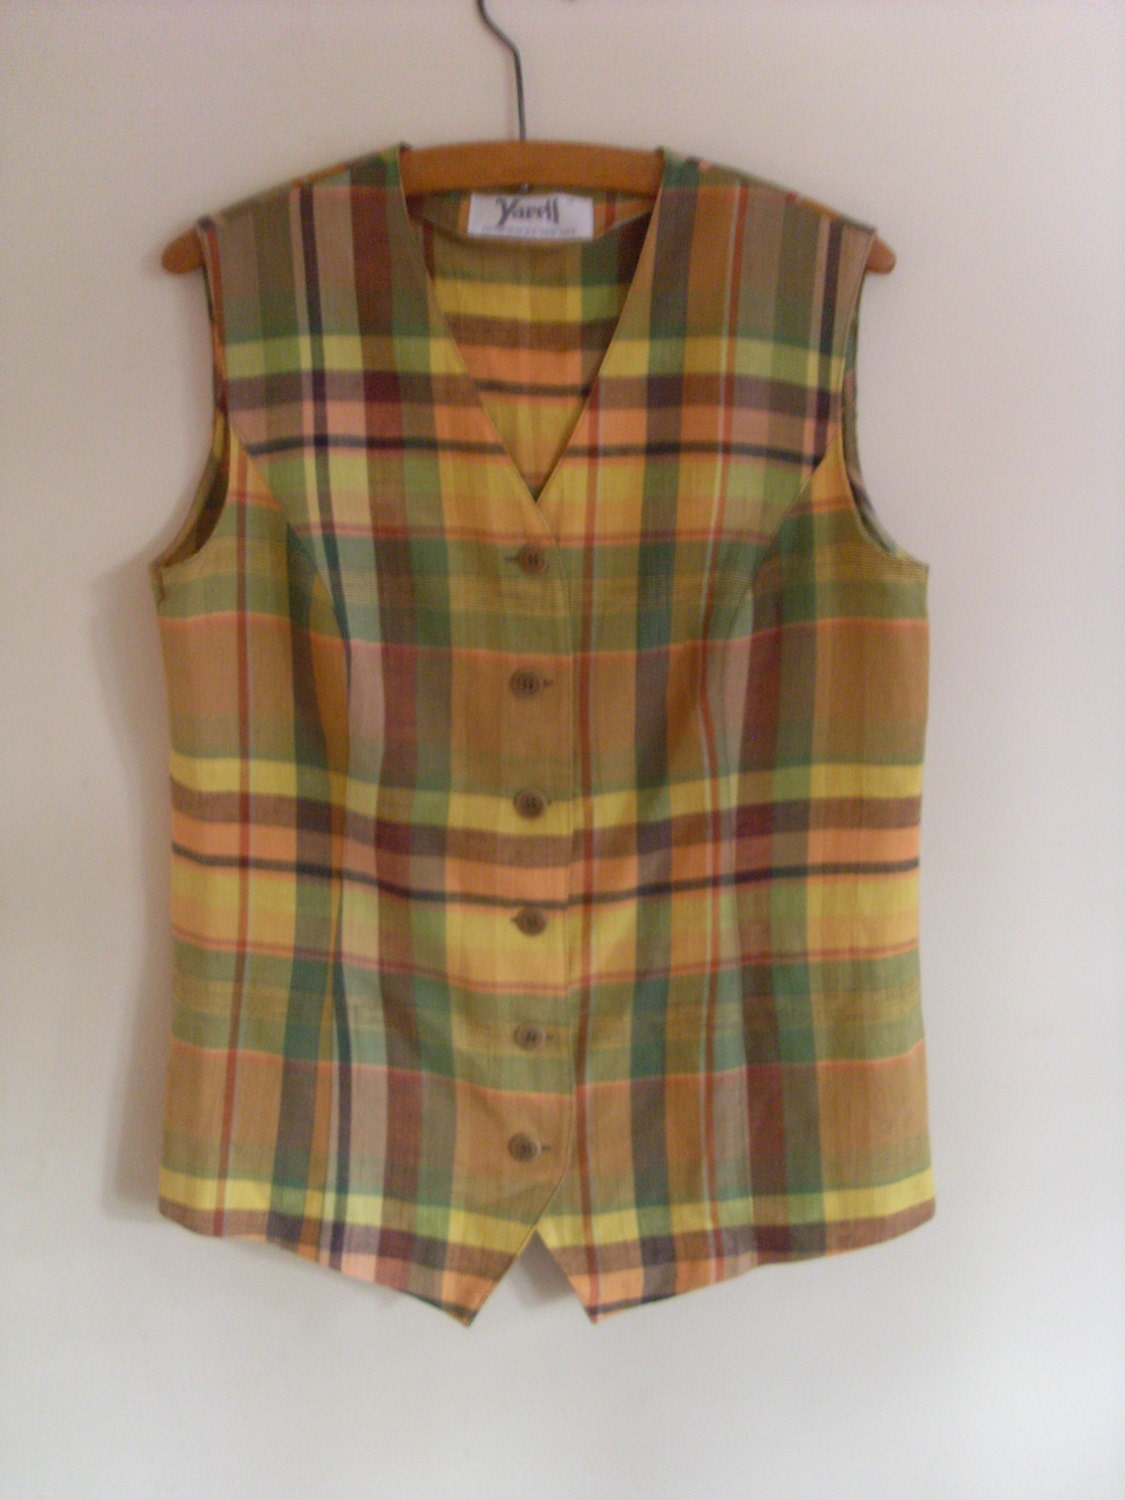 plaid waistcoat plaid vest check waistcoat yellow green. Black Bedroom Furniture Sets. Home Design Ideas